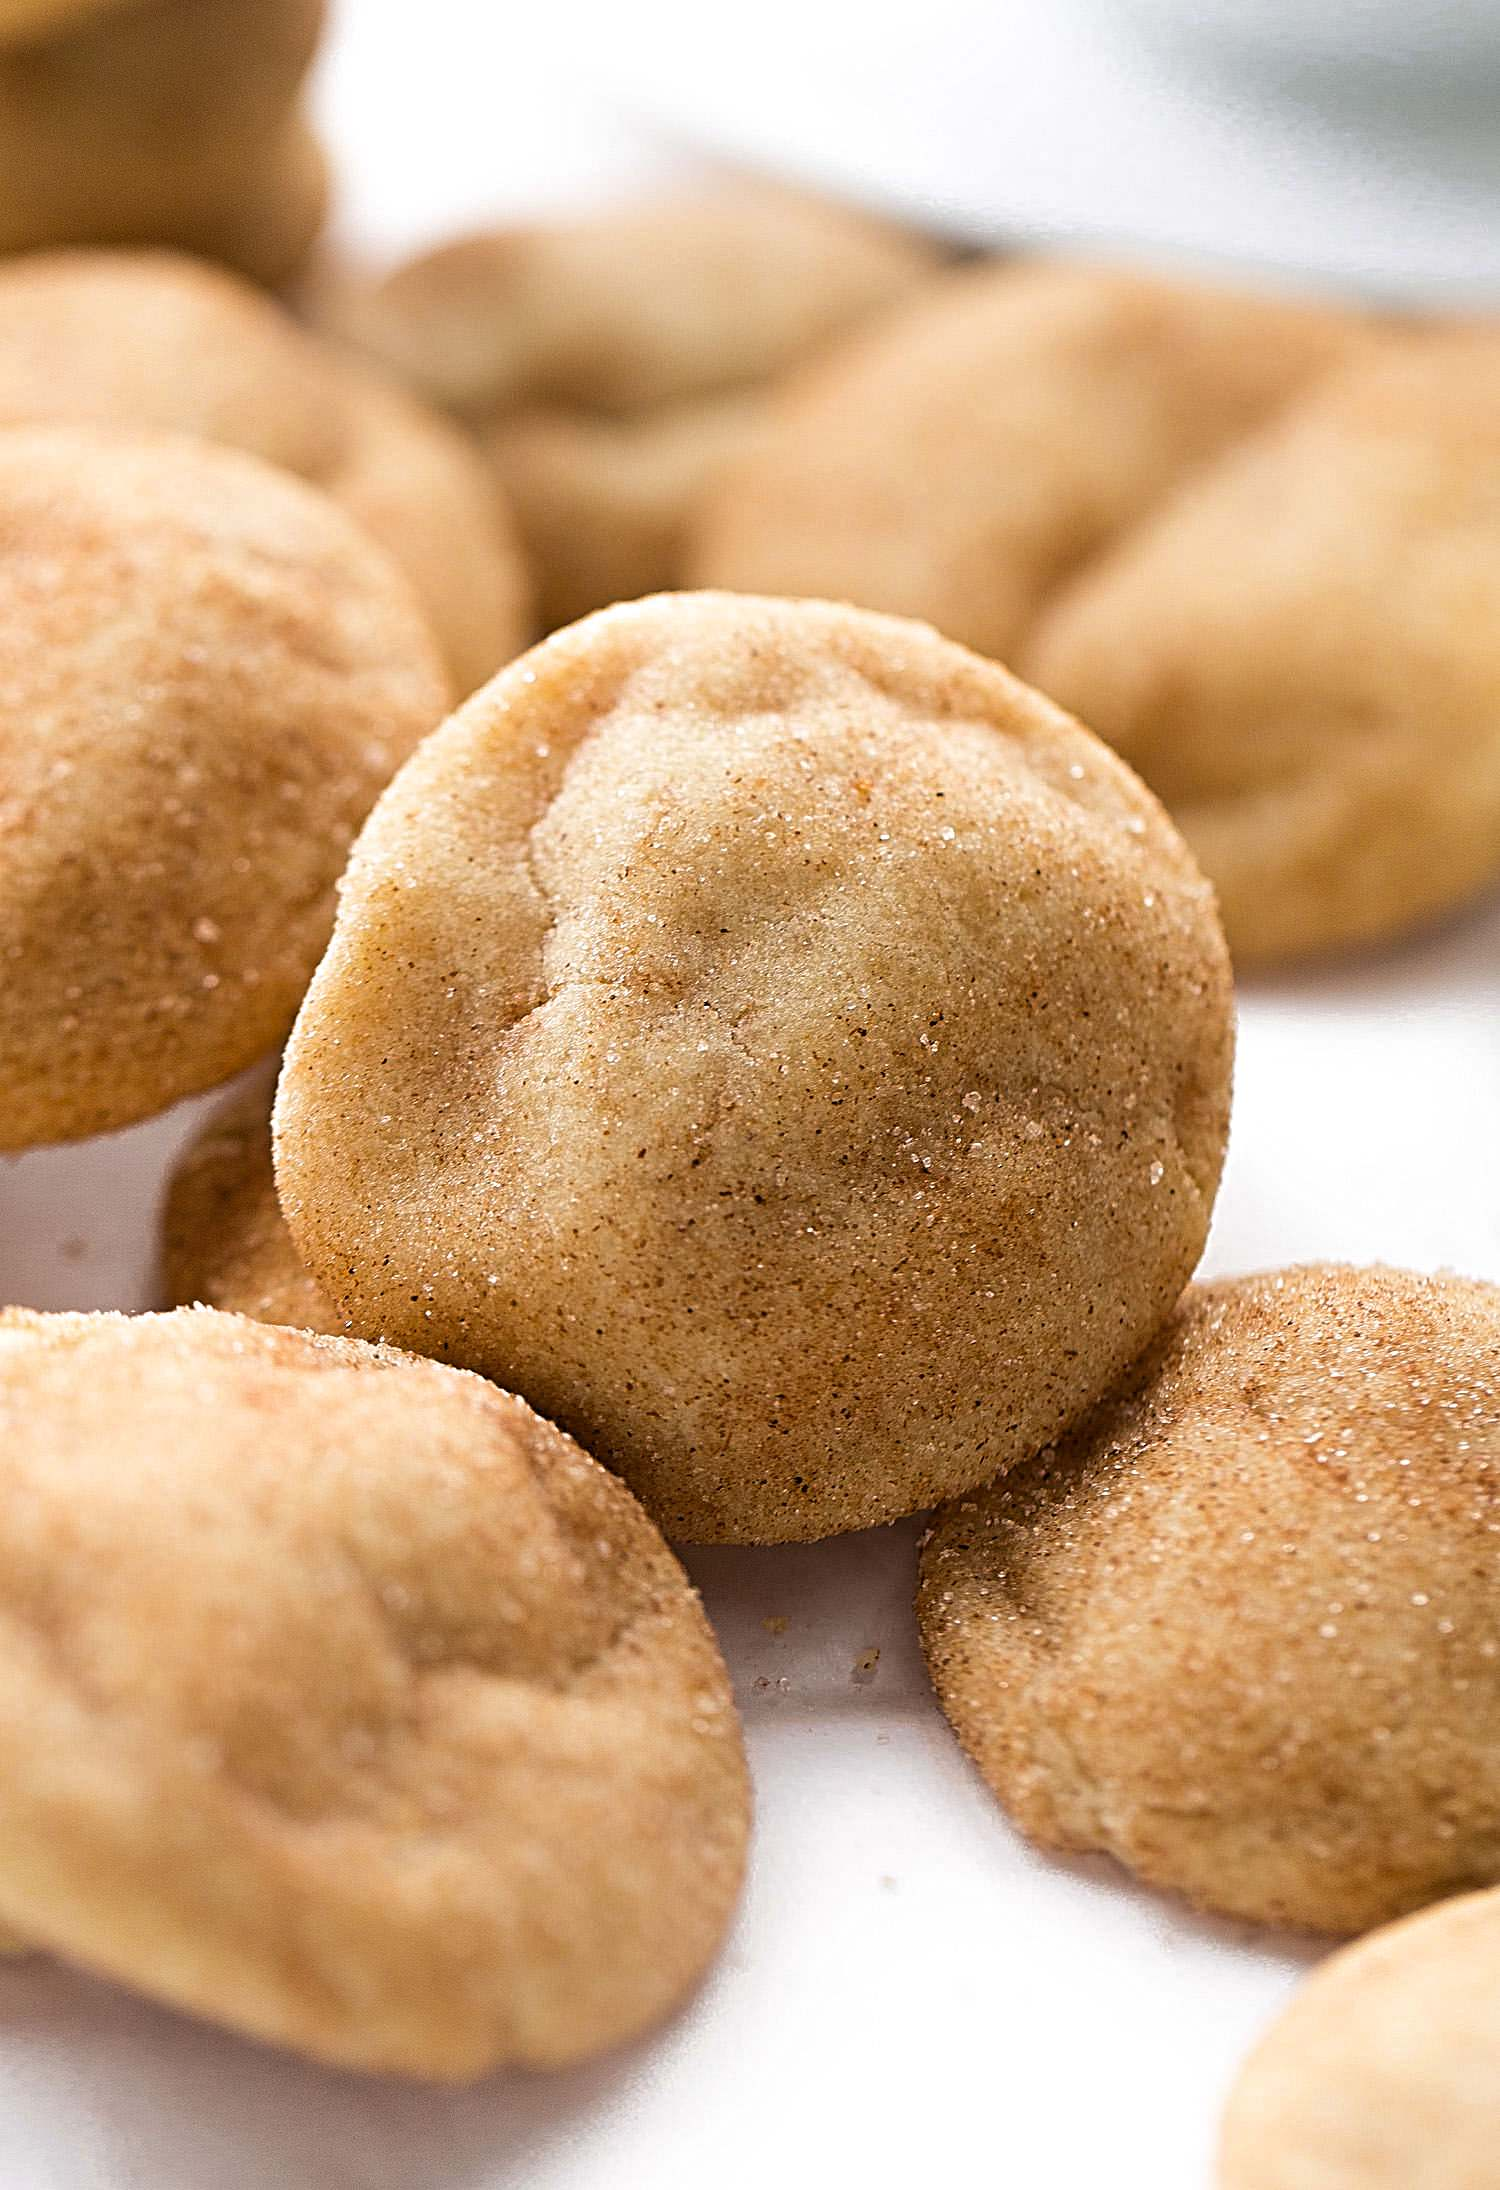 Brown Butter Snickerdoodle Cookies: easy, rich, thick, soft, chewy snickerdoodle cookies full of caramel flavor from the browned butter! | TrufflesandTrends.com